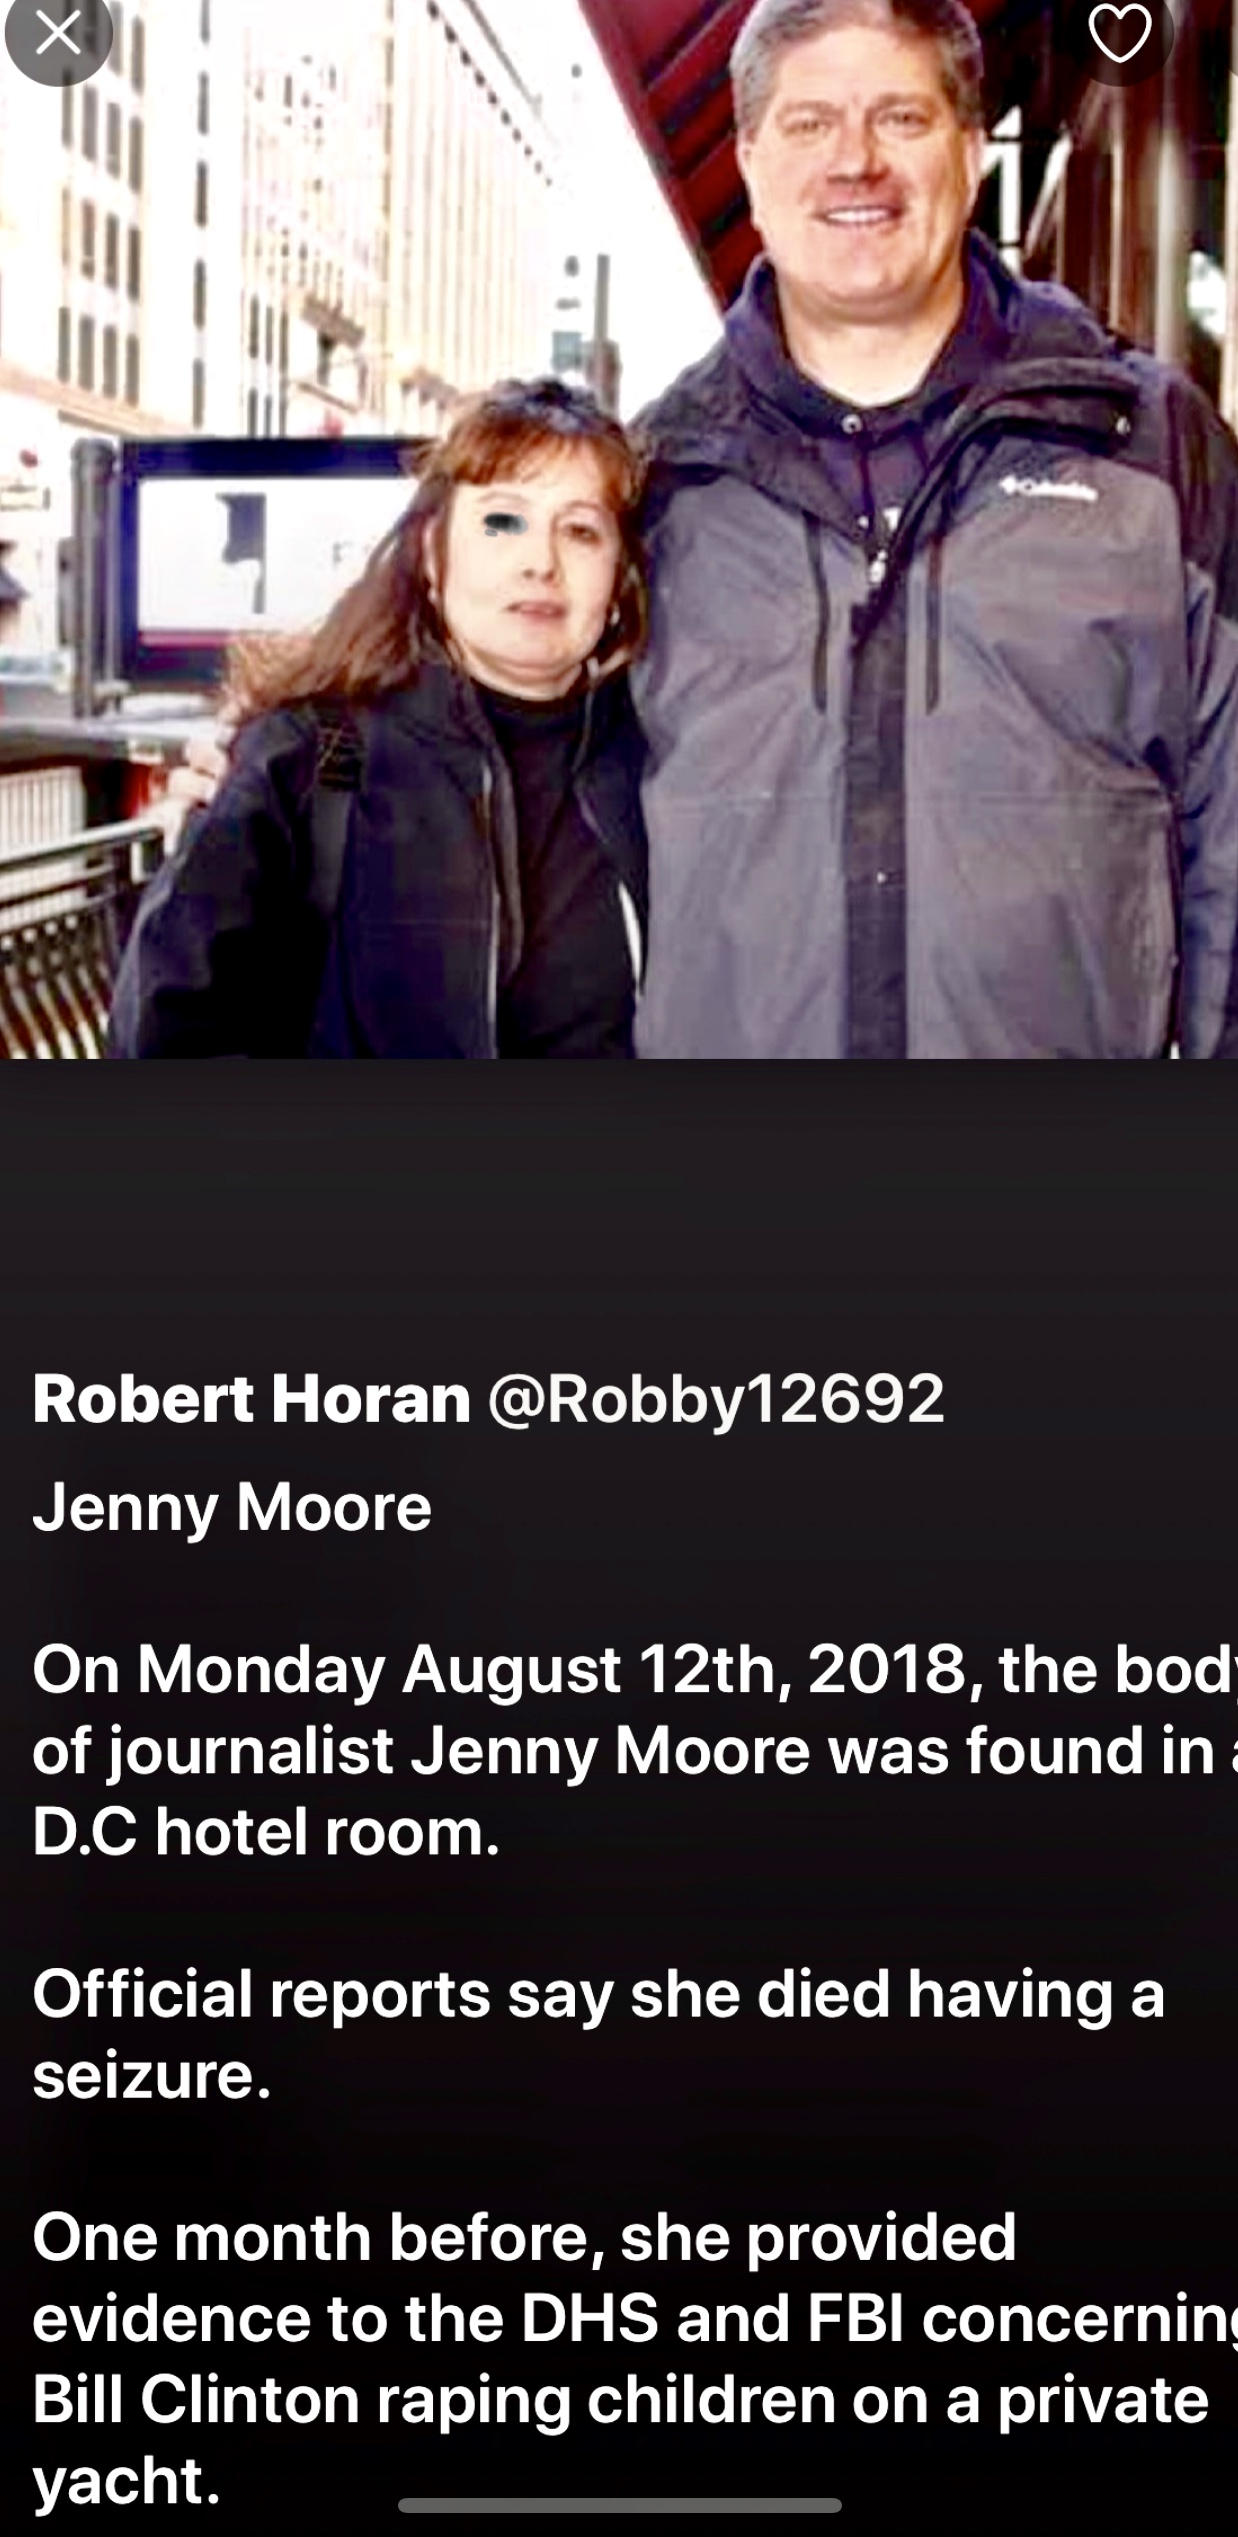 Reporters Jen Moore, Joseph Rago and Michael Hastings gave their Lives to Expose the Corruption of the Deep State